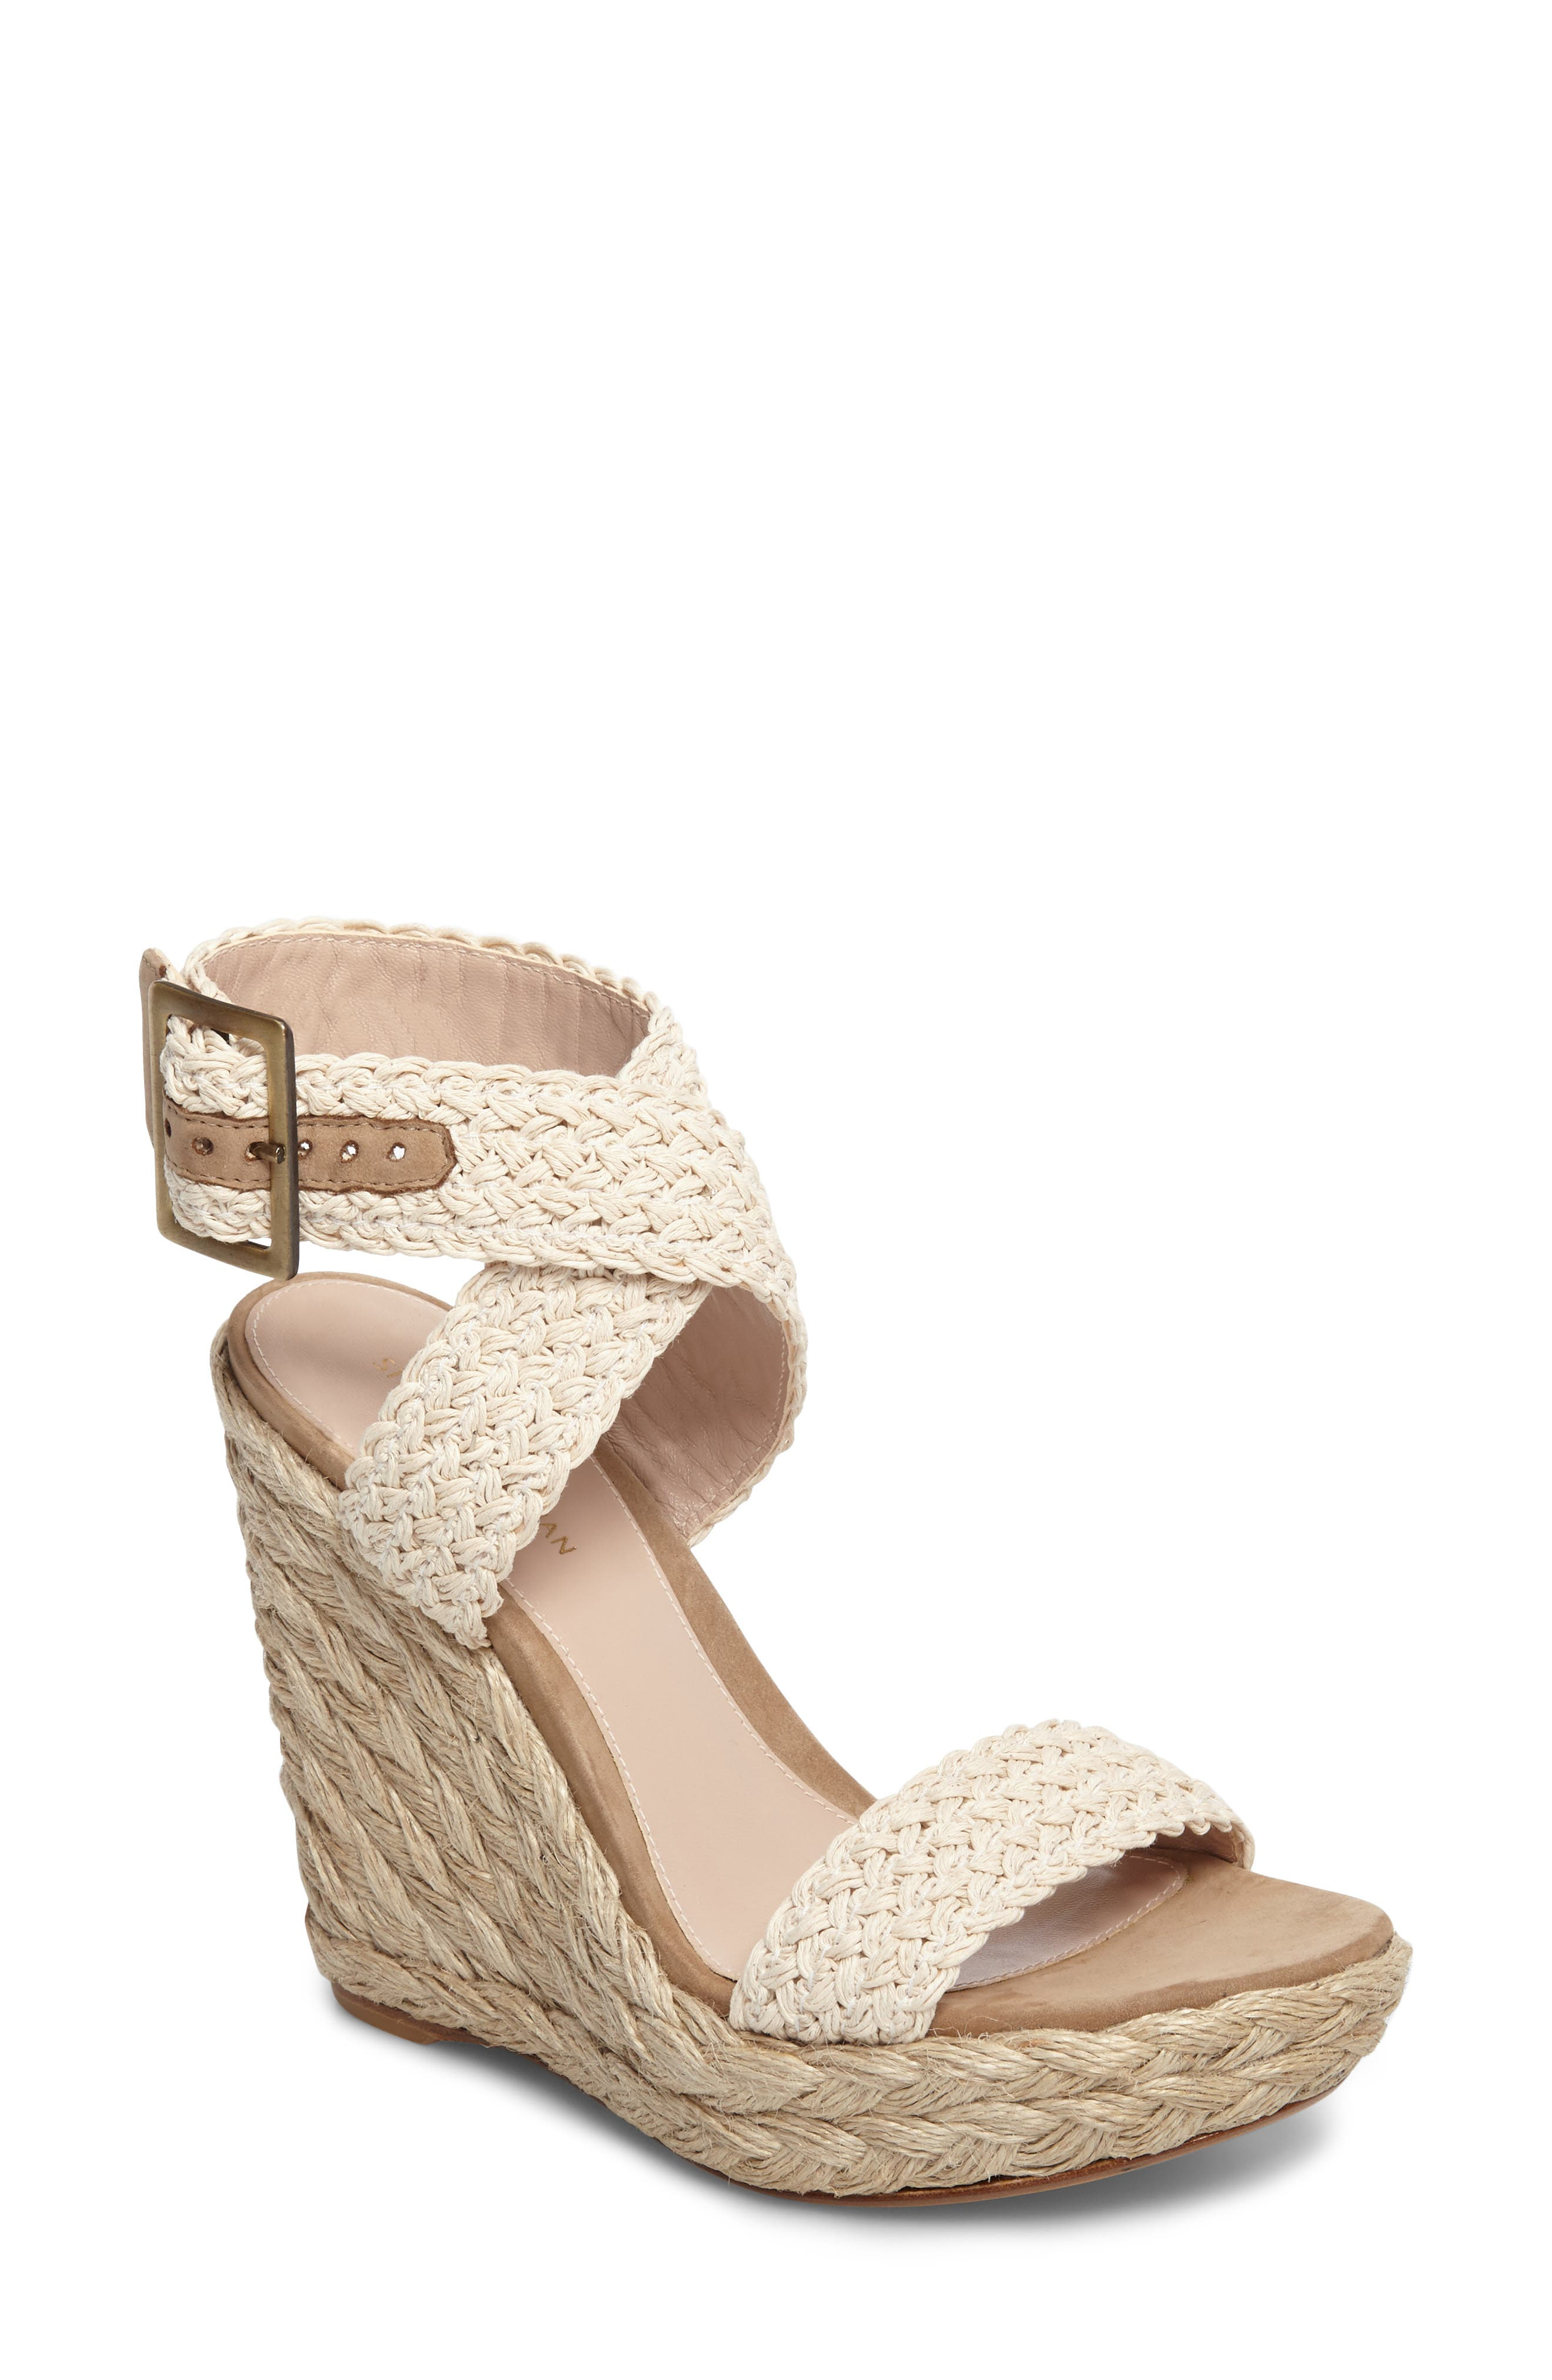 Stuart Weitzman Adventure Wedge Sandal (Women)